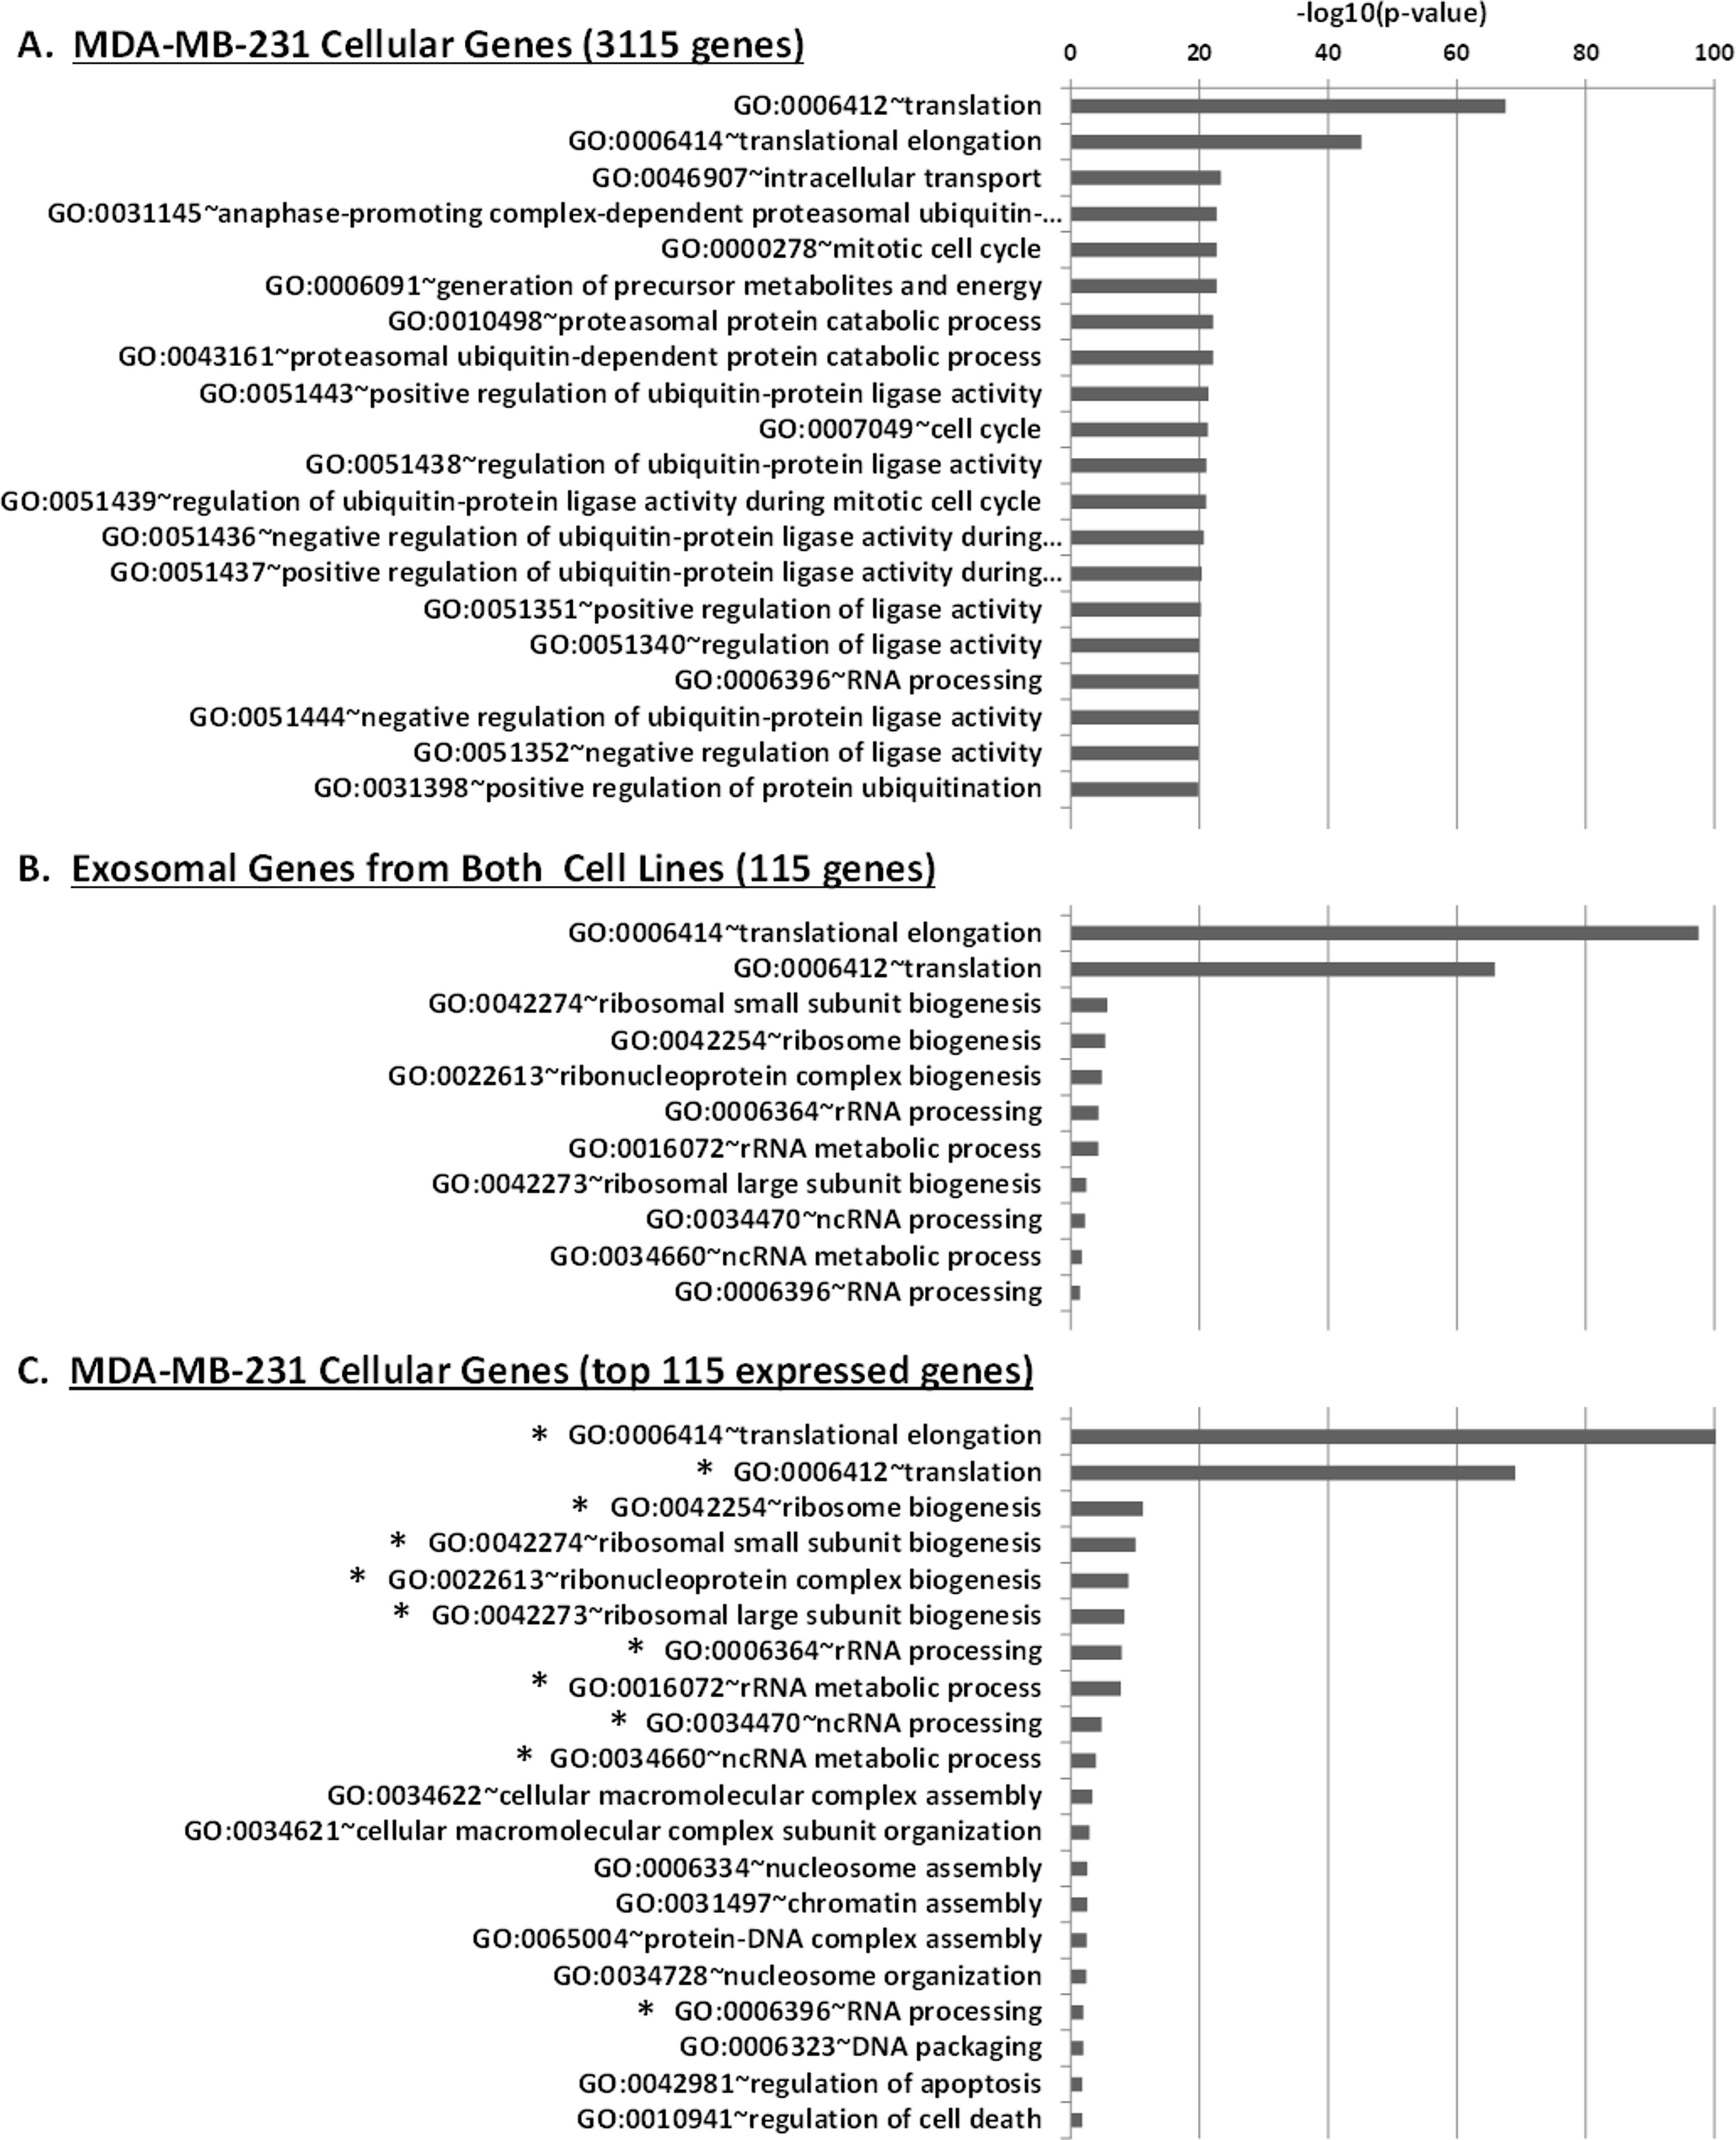 Characterization Of Rna In Exosomes Secreted By Human Breast Cancer Cell Lines Using Next Generation Sequencing Peerj